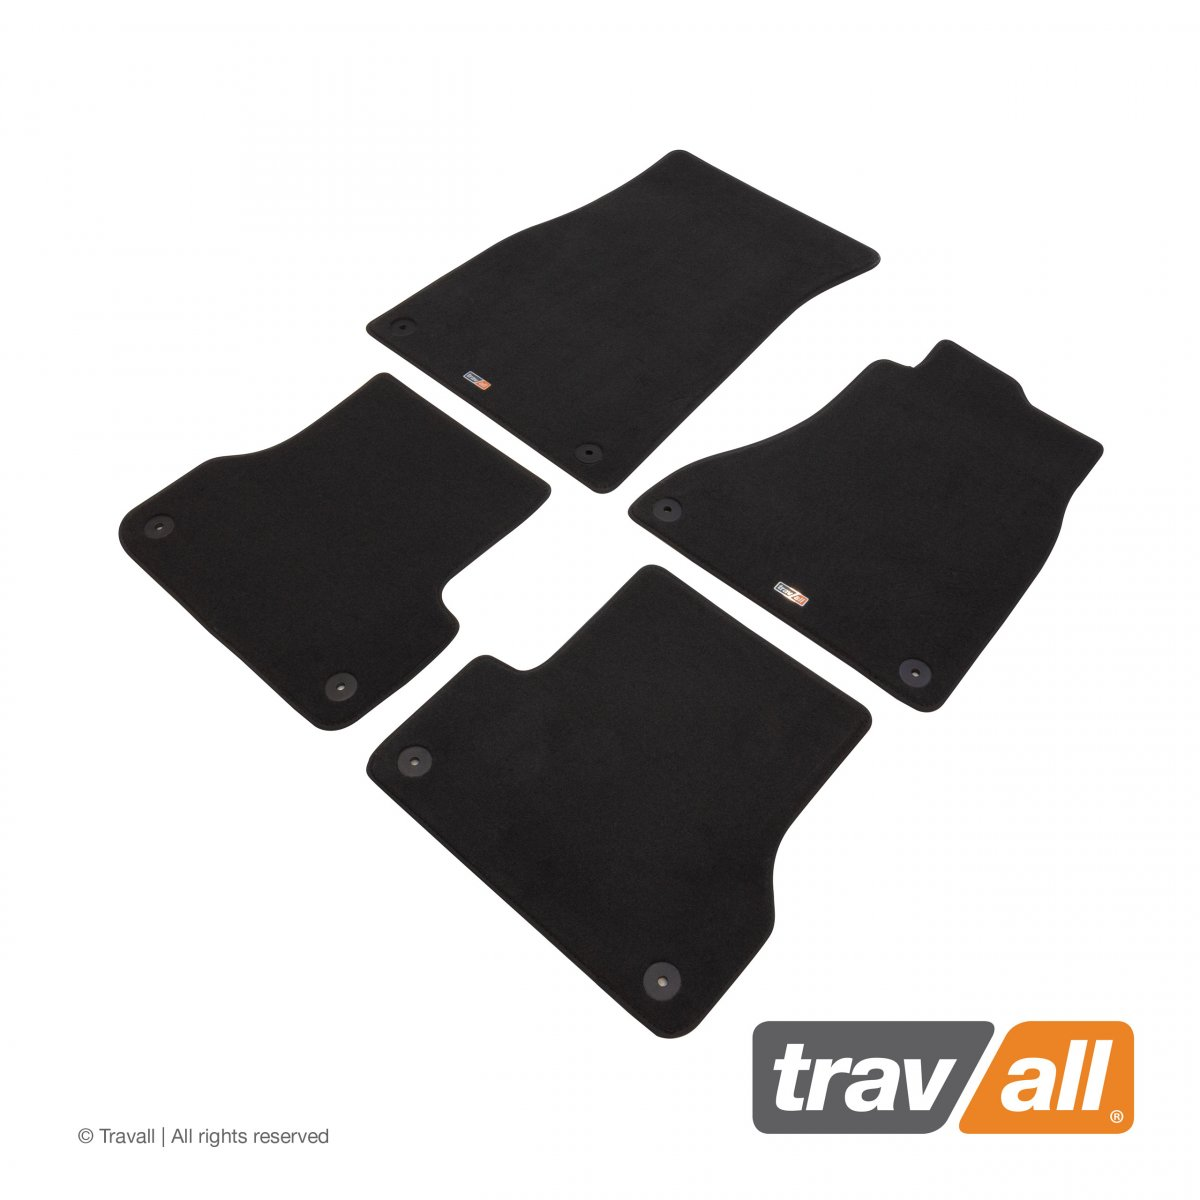 Travall® MATS [RHD] for Audi A7/S7 Sportback (2010 - 2018)